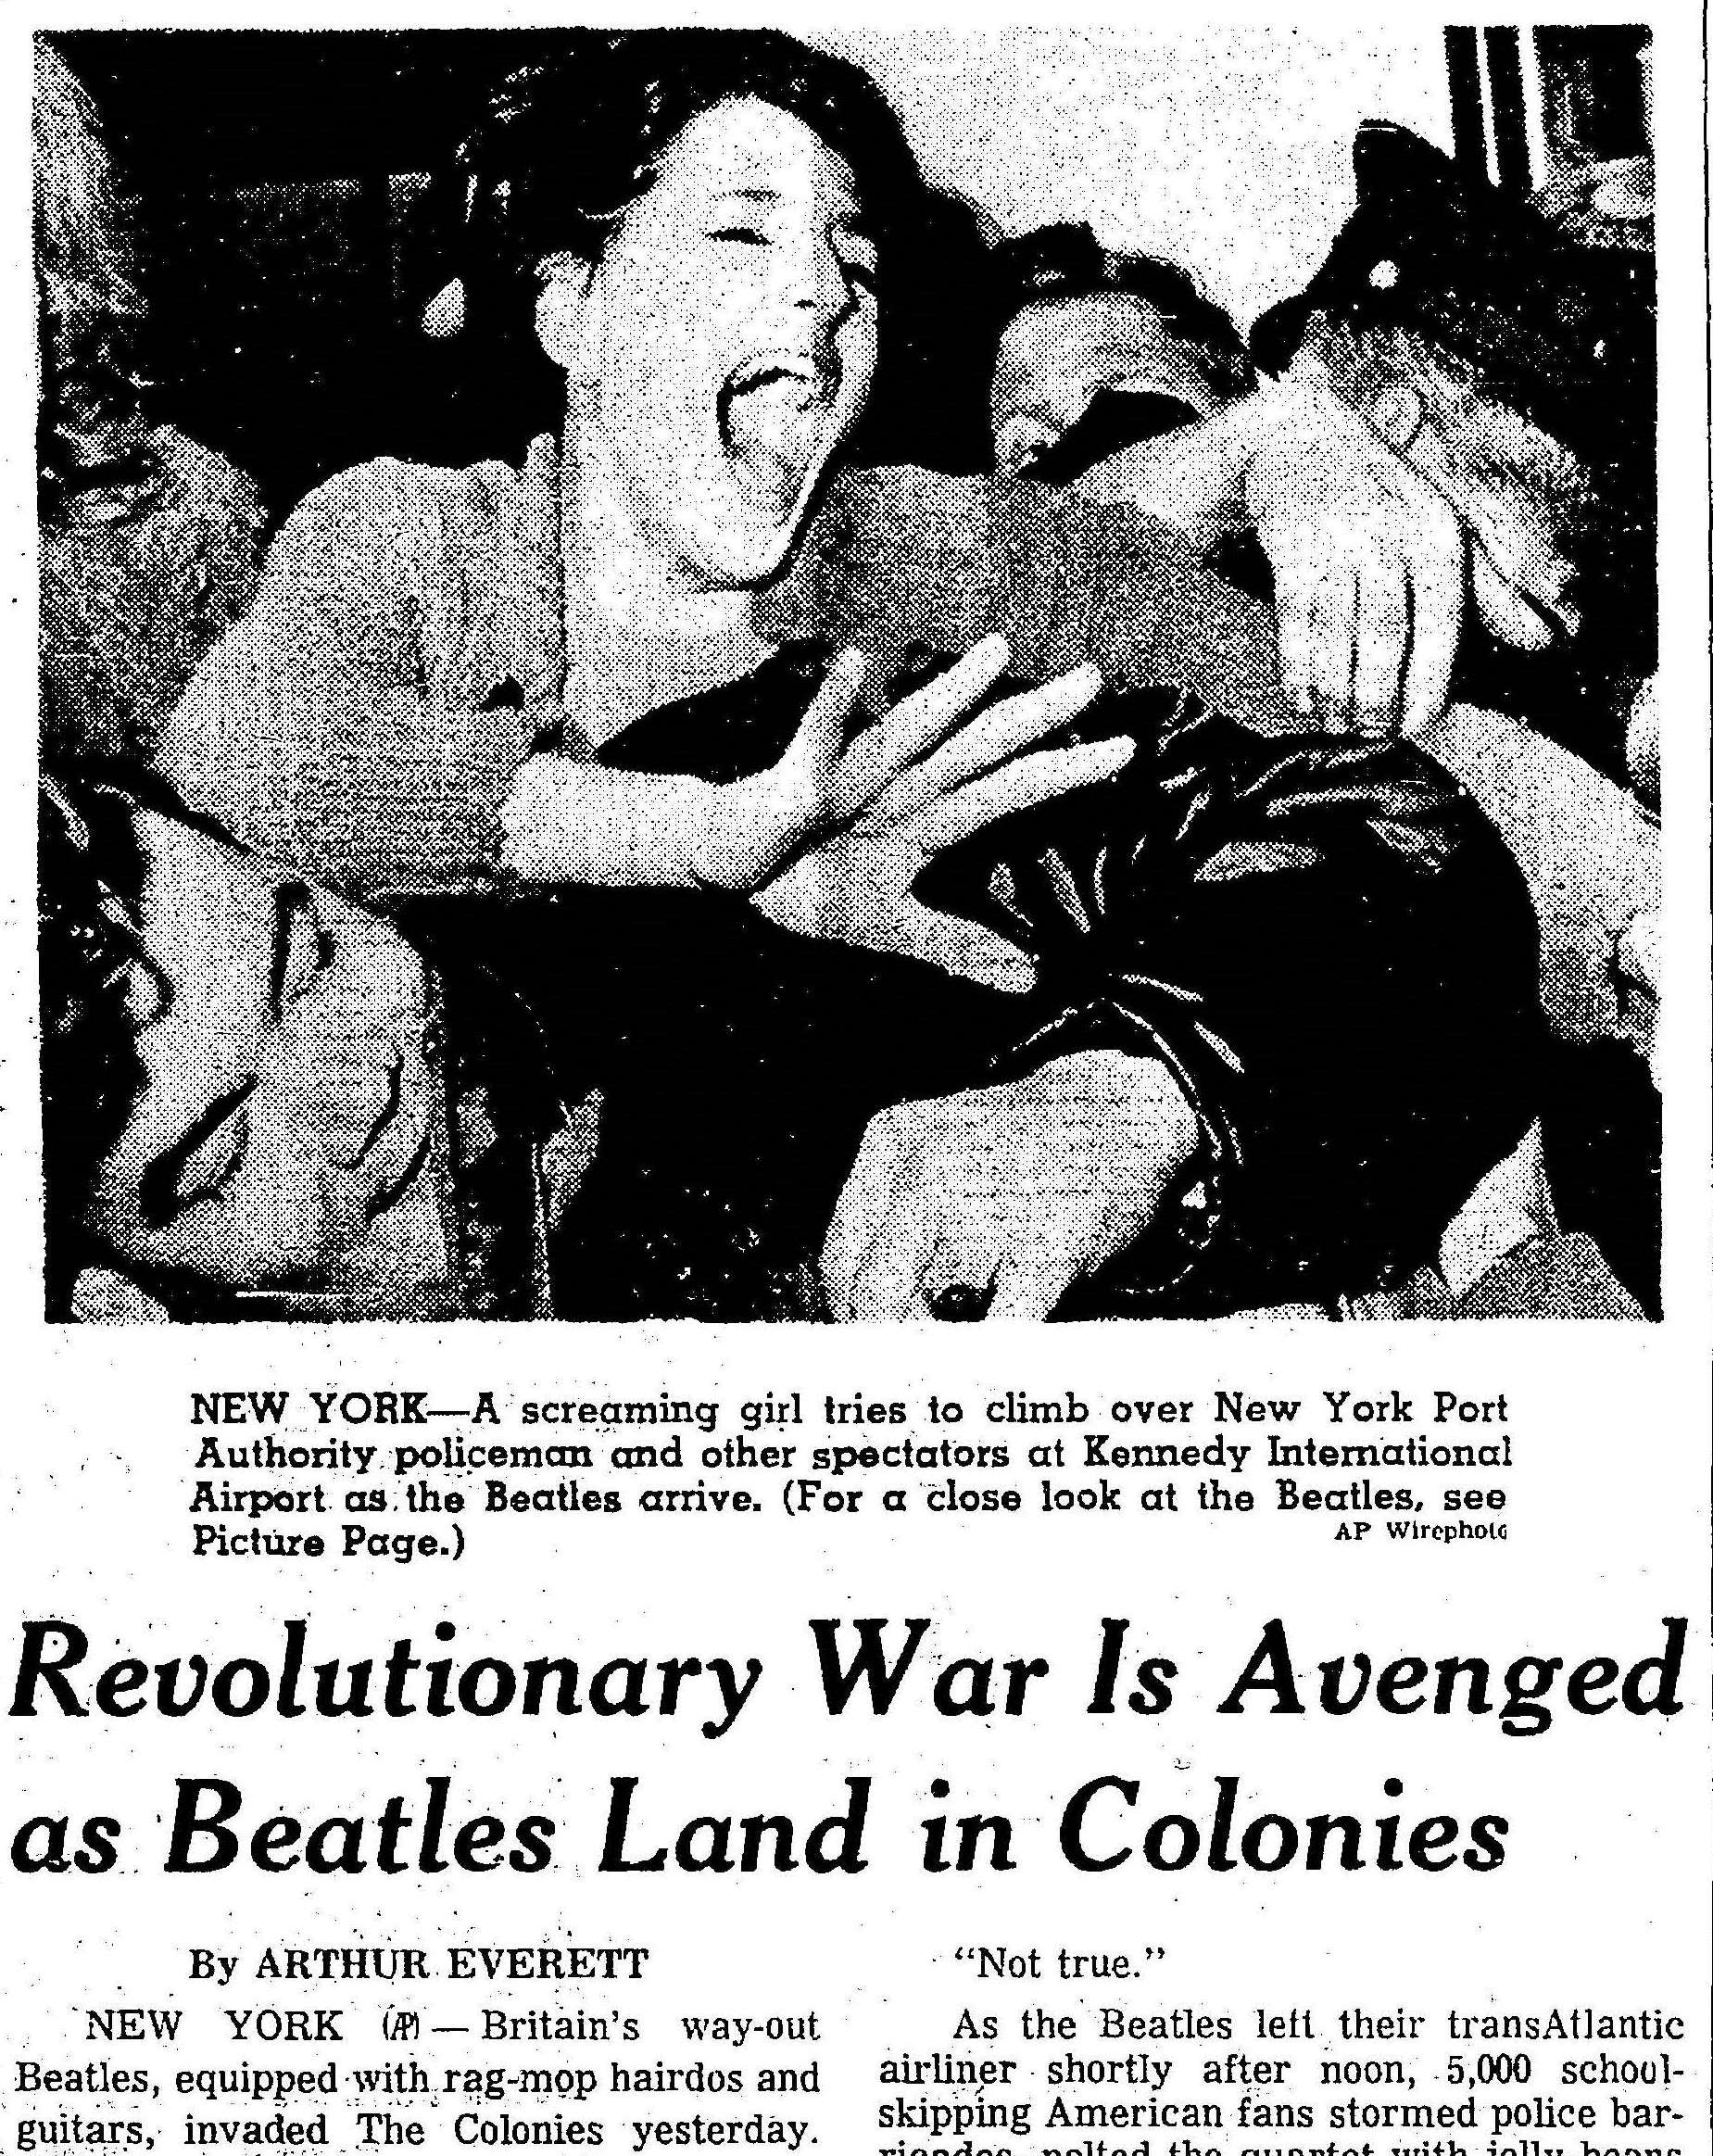 (From the Cleveland Plain Dealer, 8 February 1964. Click to open full article.)